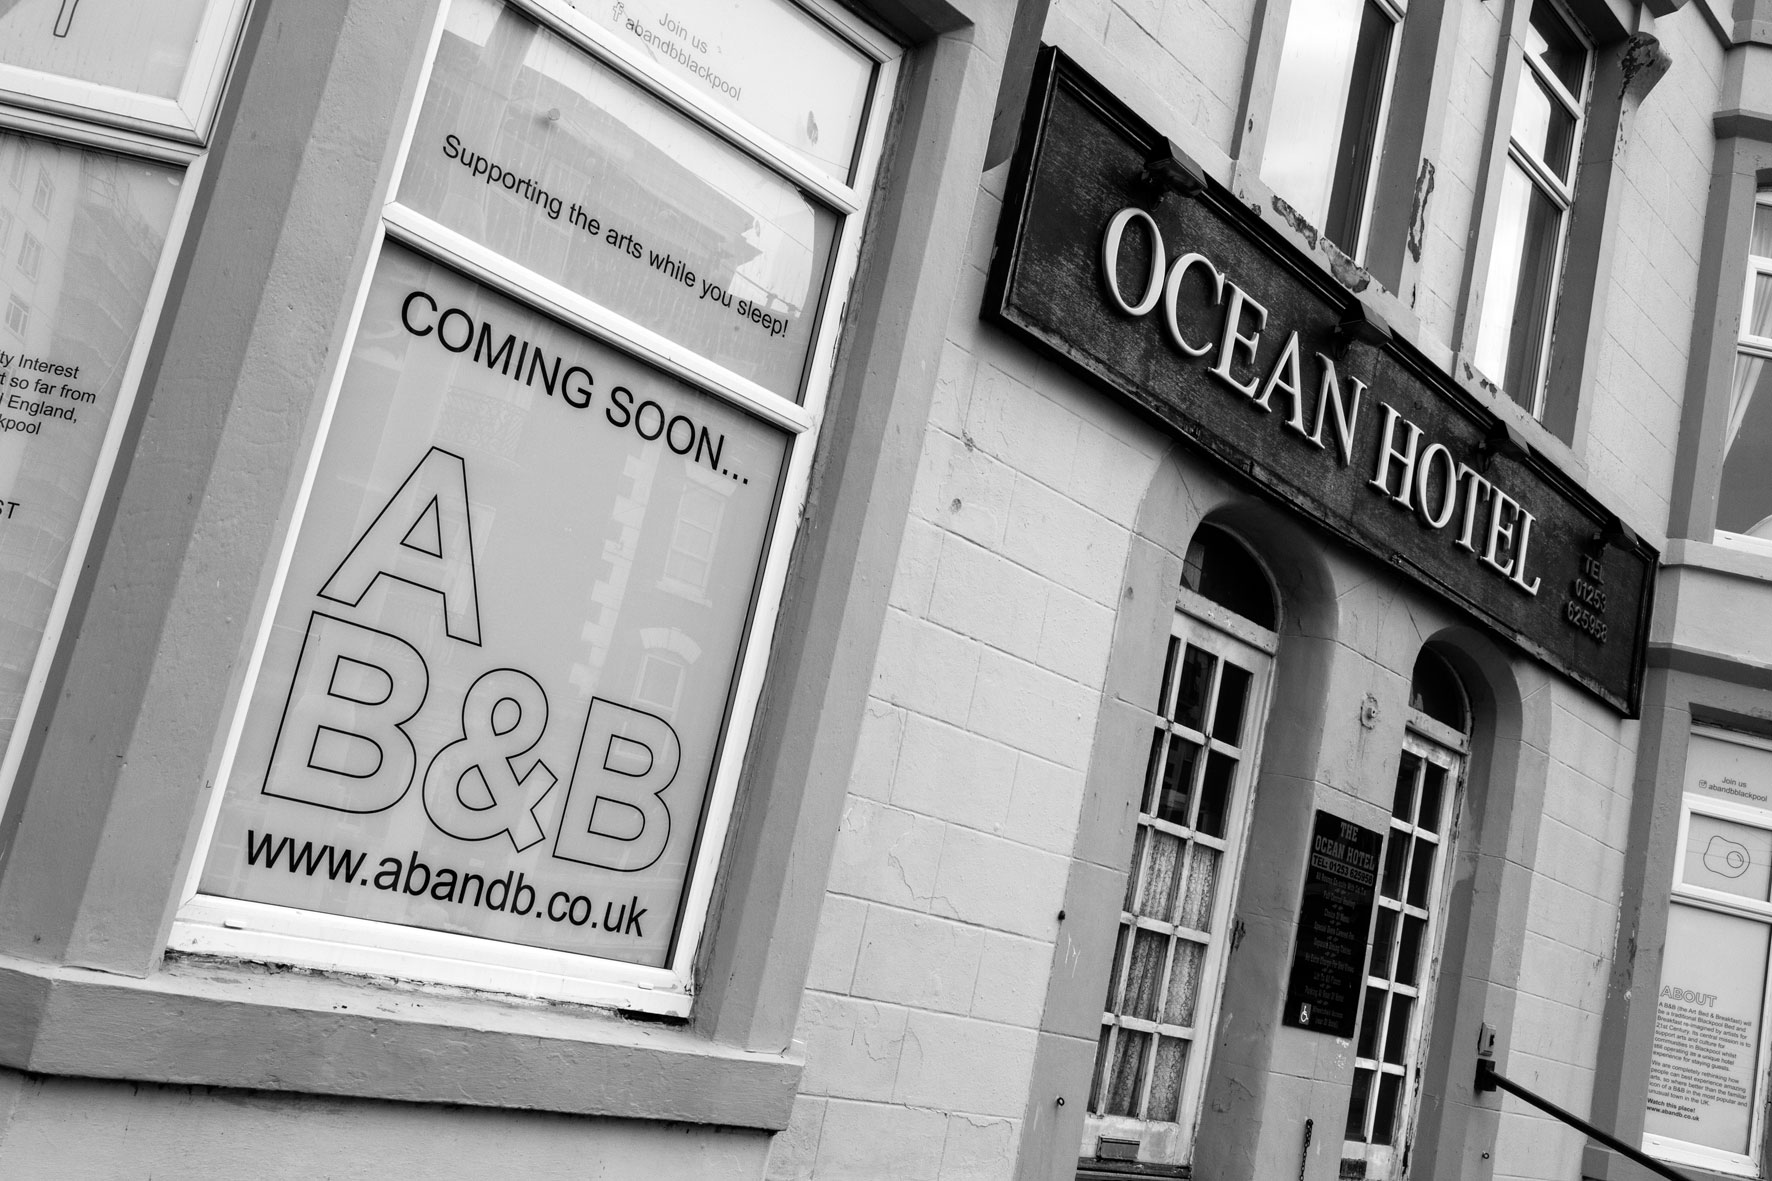 Picture of a shop in black and white, the shop is named ocean hotel